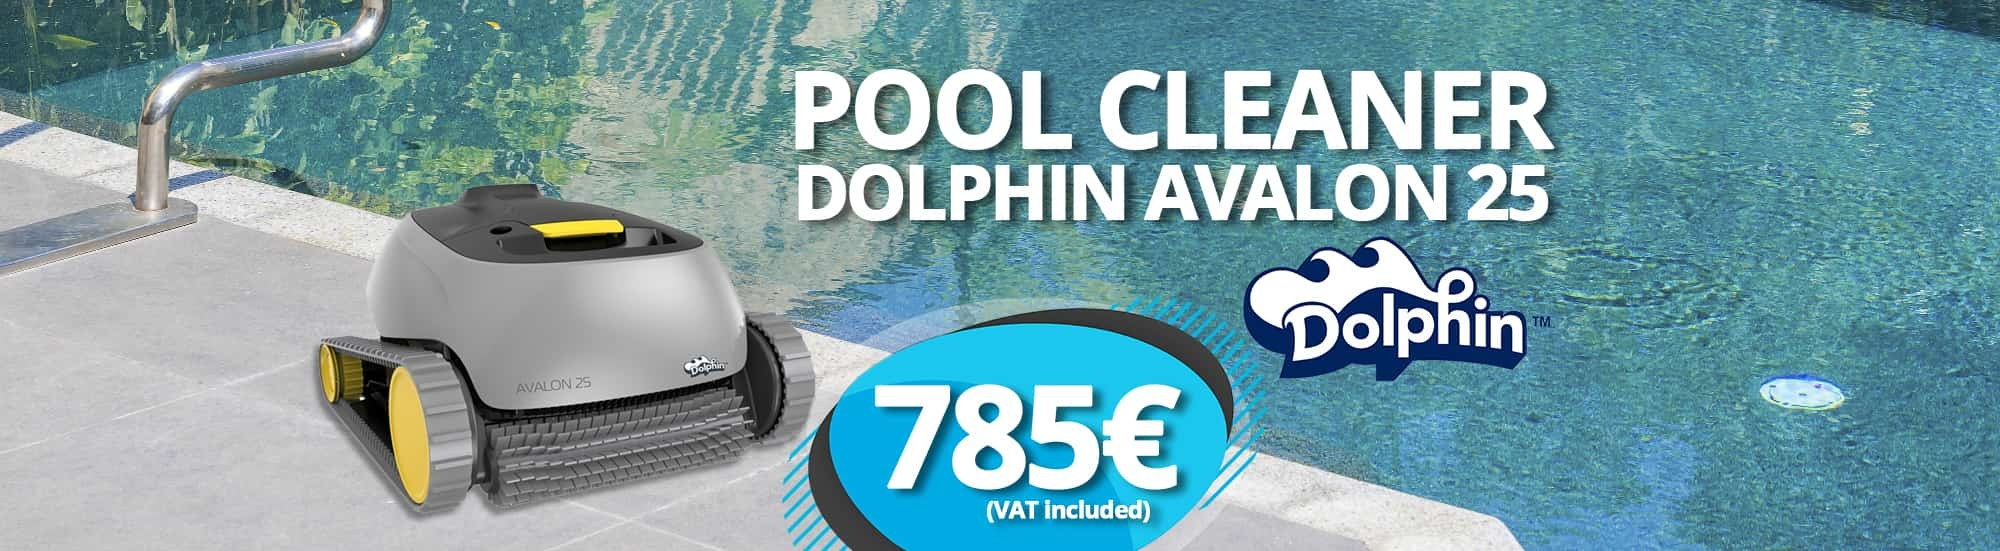 Pool Cleaner Dolphin Avalon 25